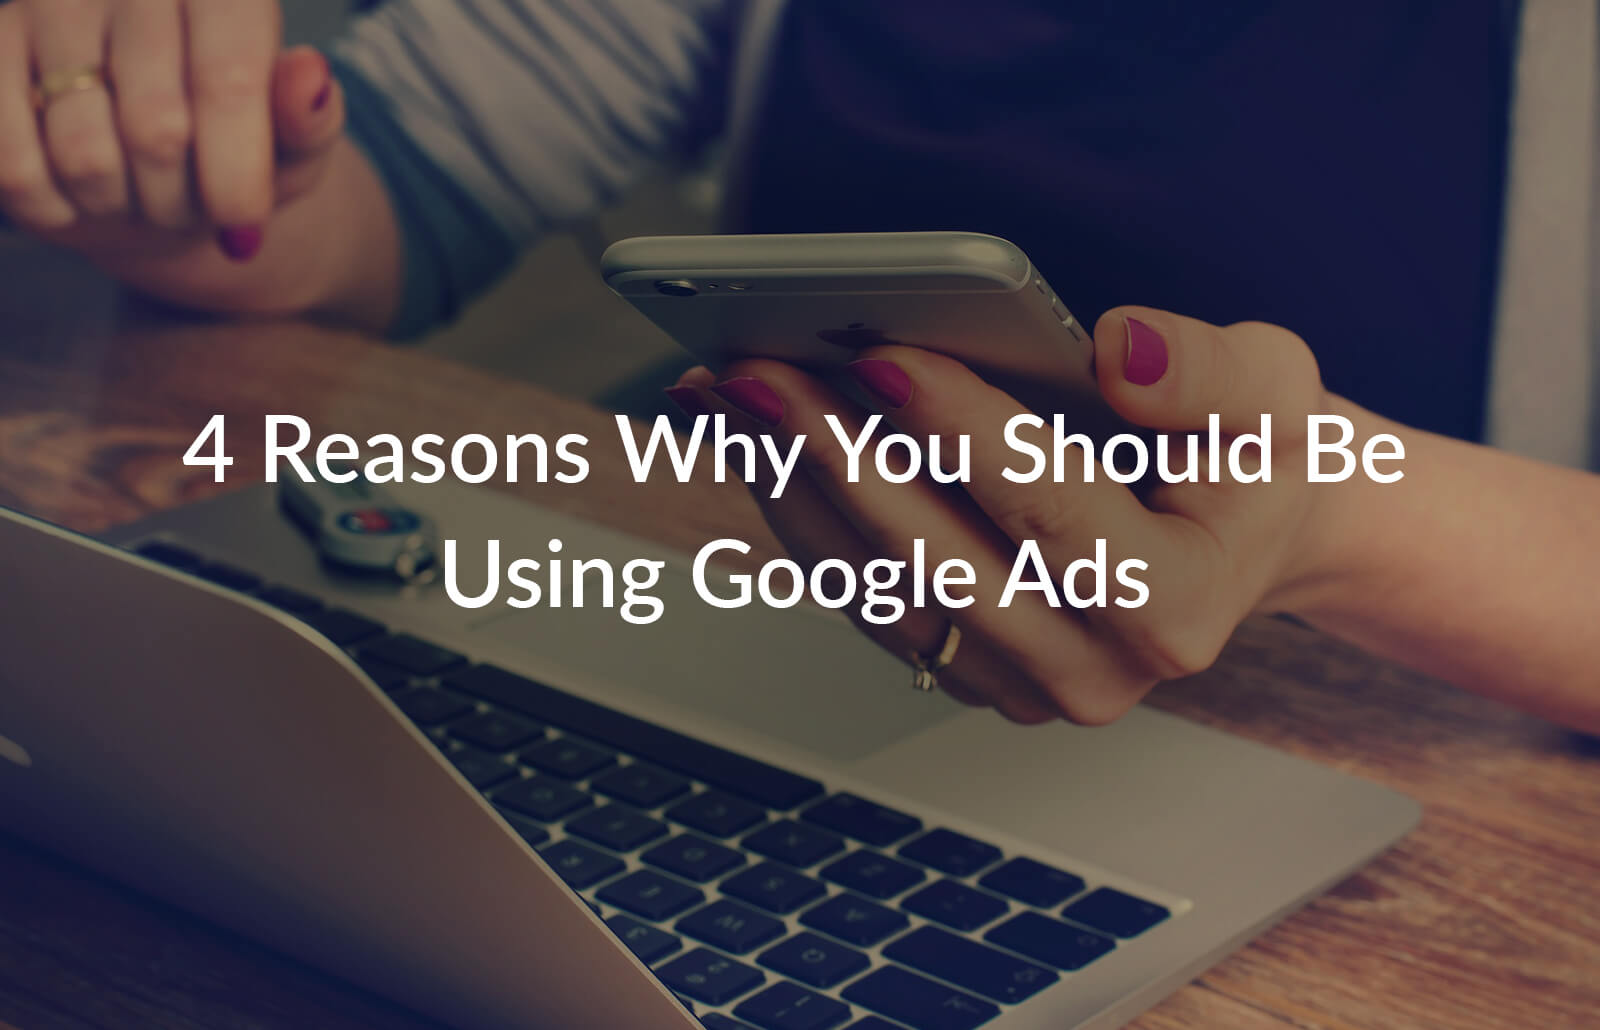 4 Reasons Why You Should Be Using Google Ads